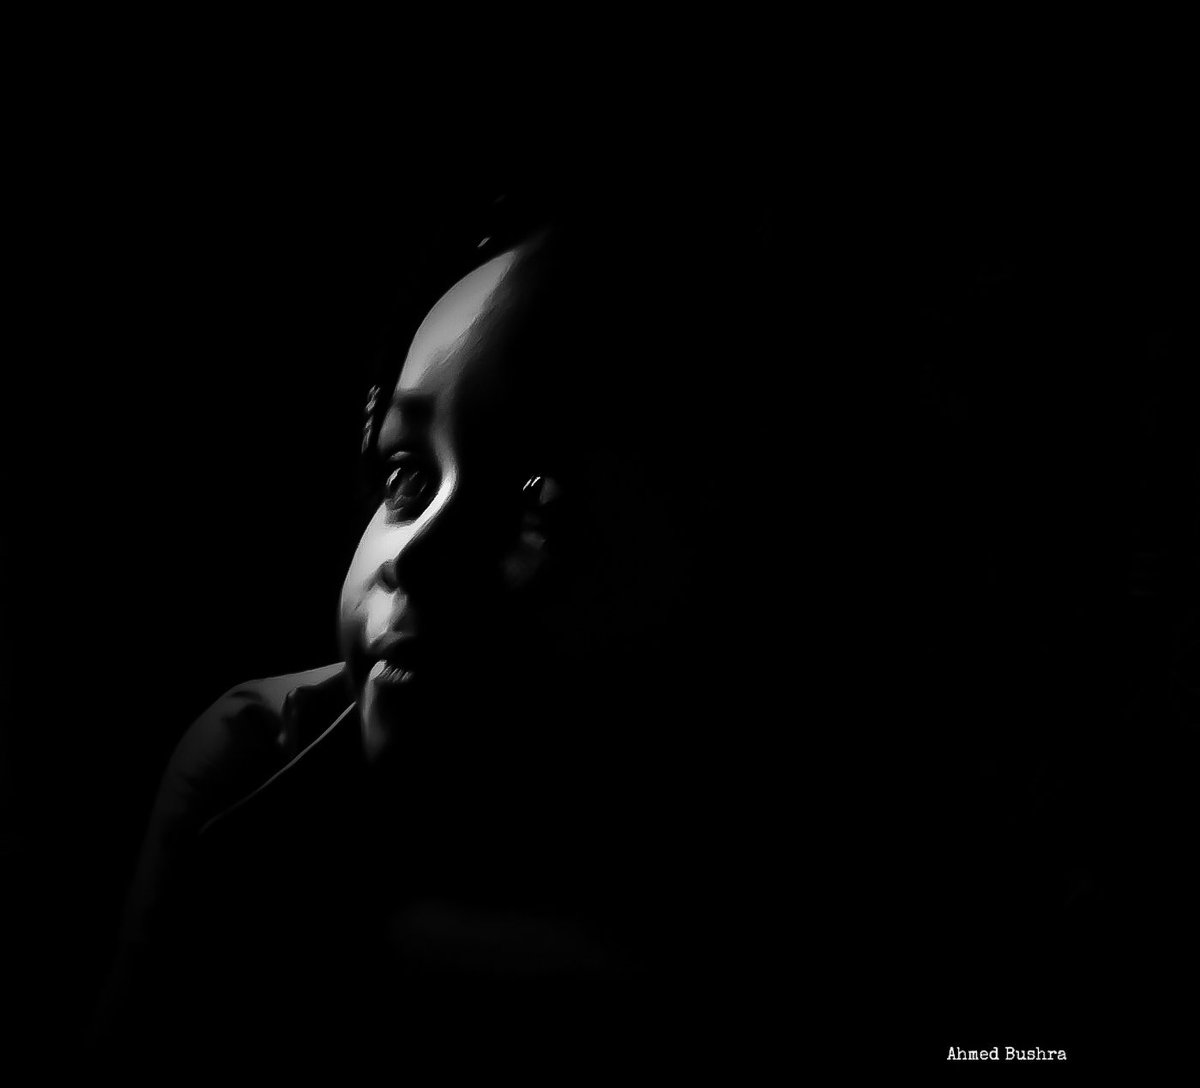 Portrait Child from sudan #mobilephotography pic.twitter.com/df5wDMrRg1